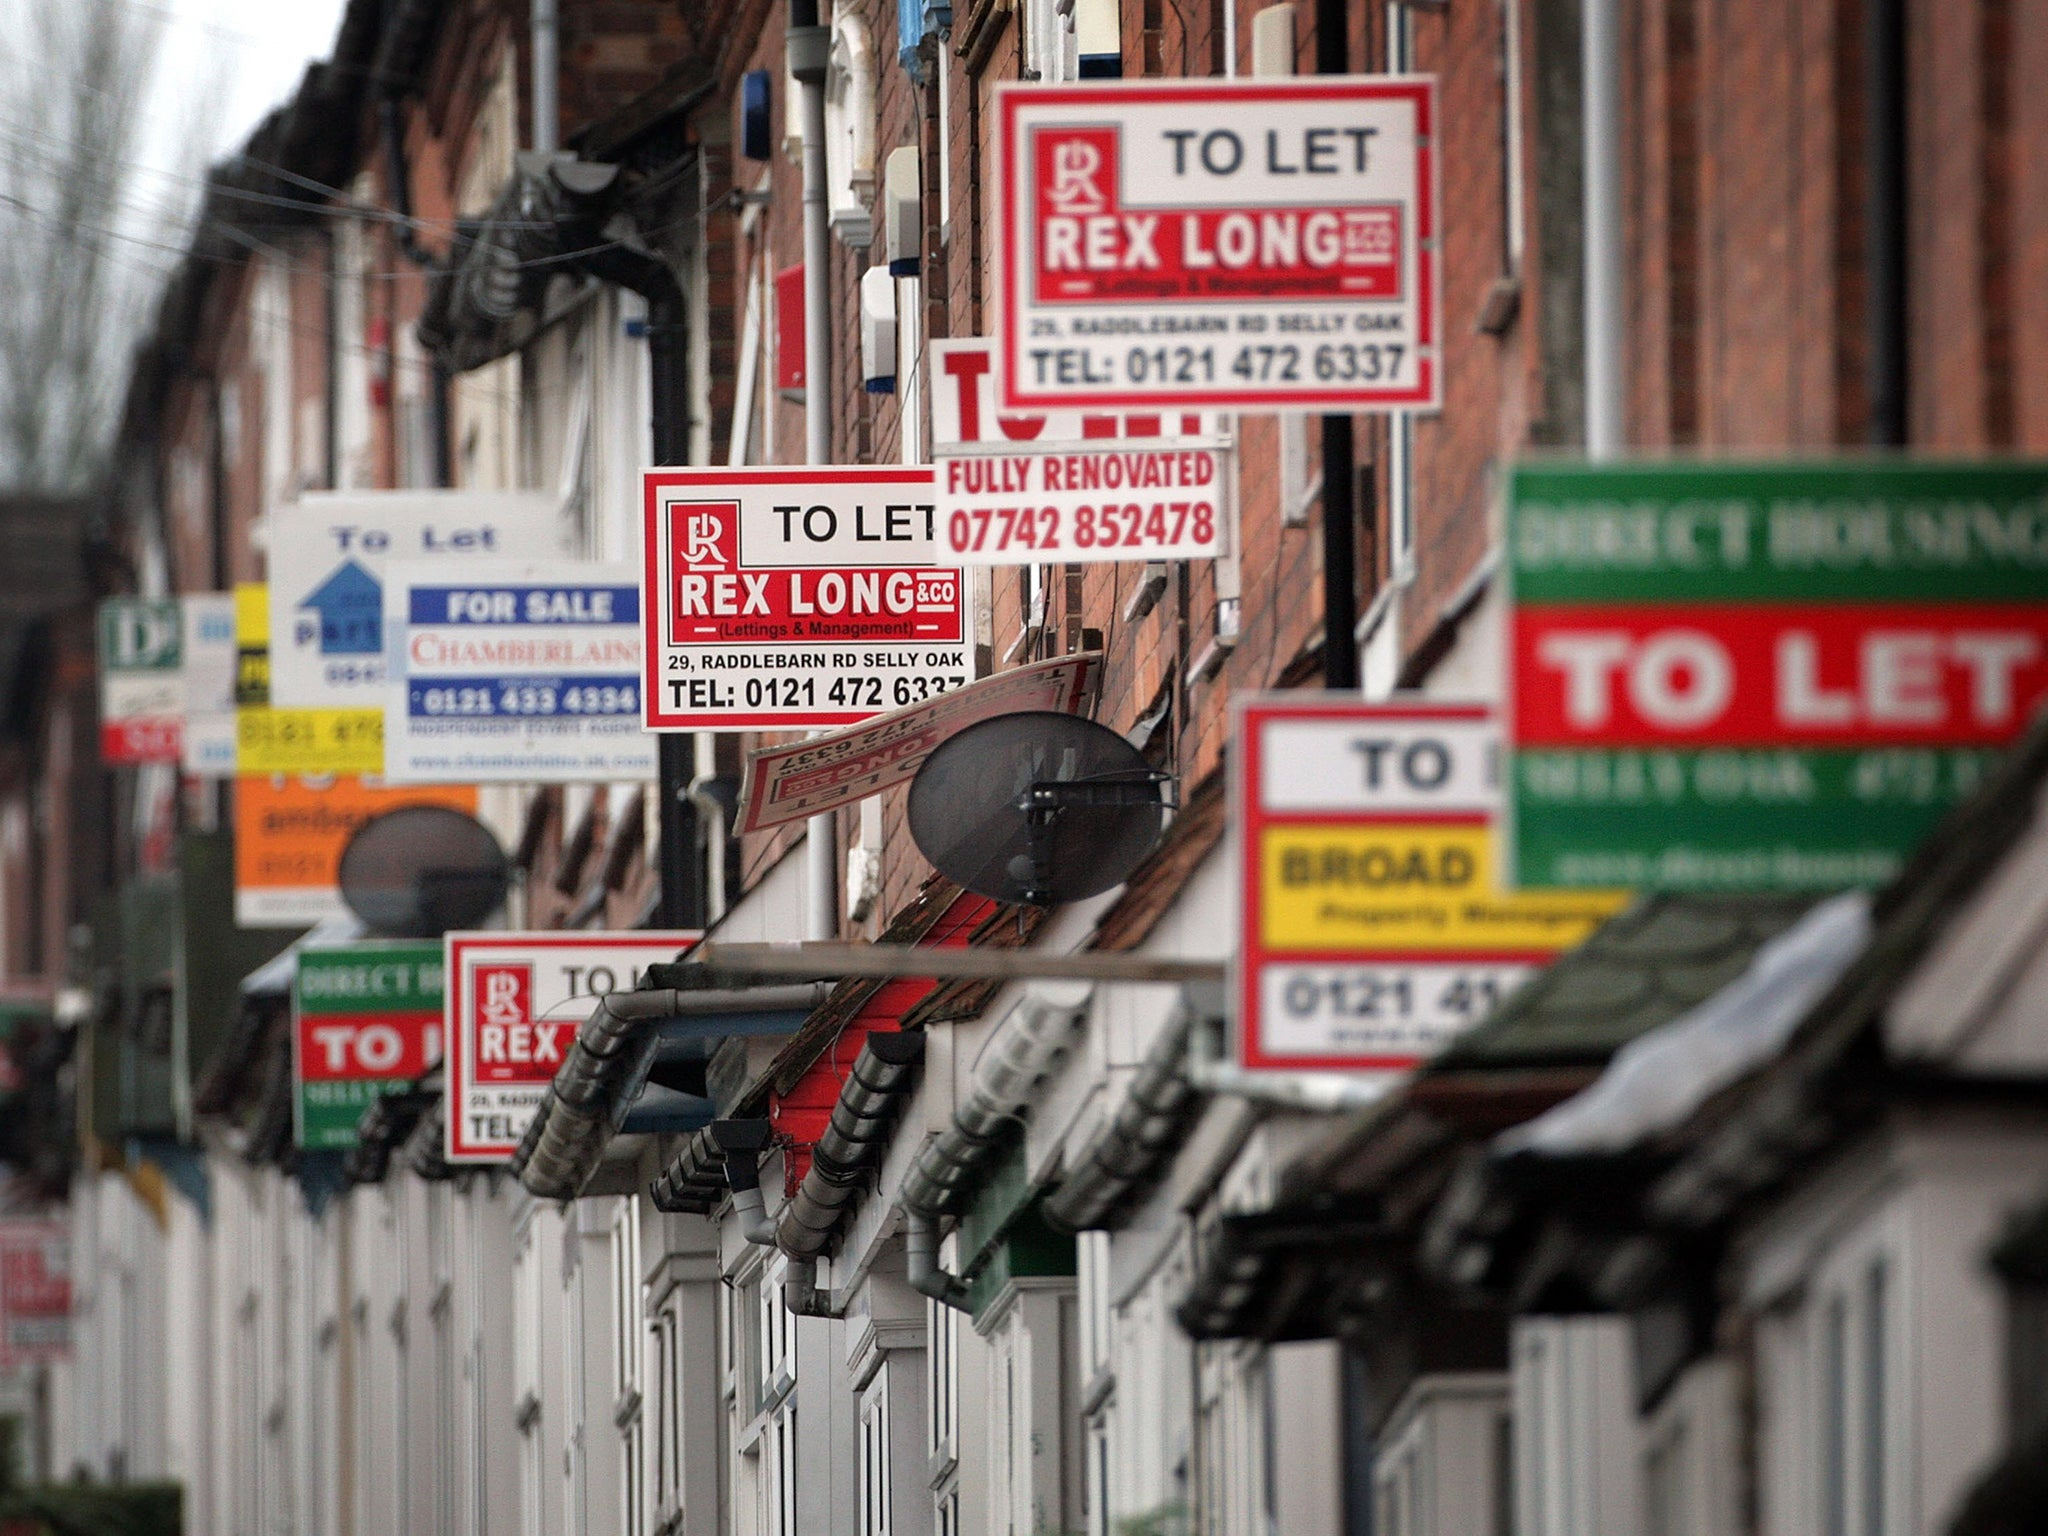 Landlords shunning foreigners because of their accents, after new rules preventing illegal migrants from renting